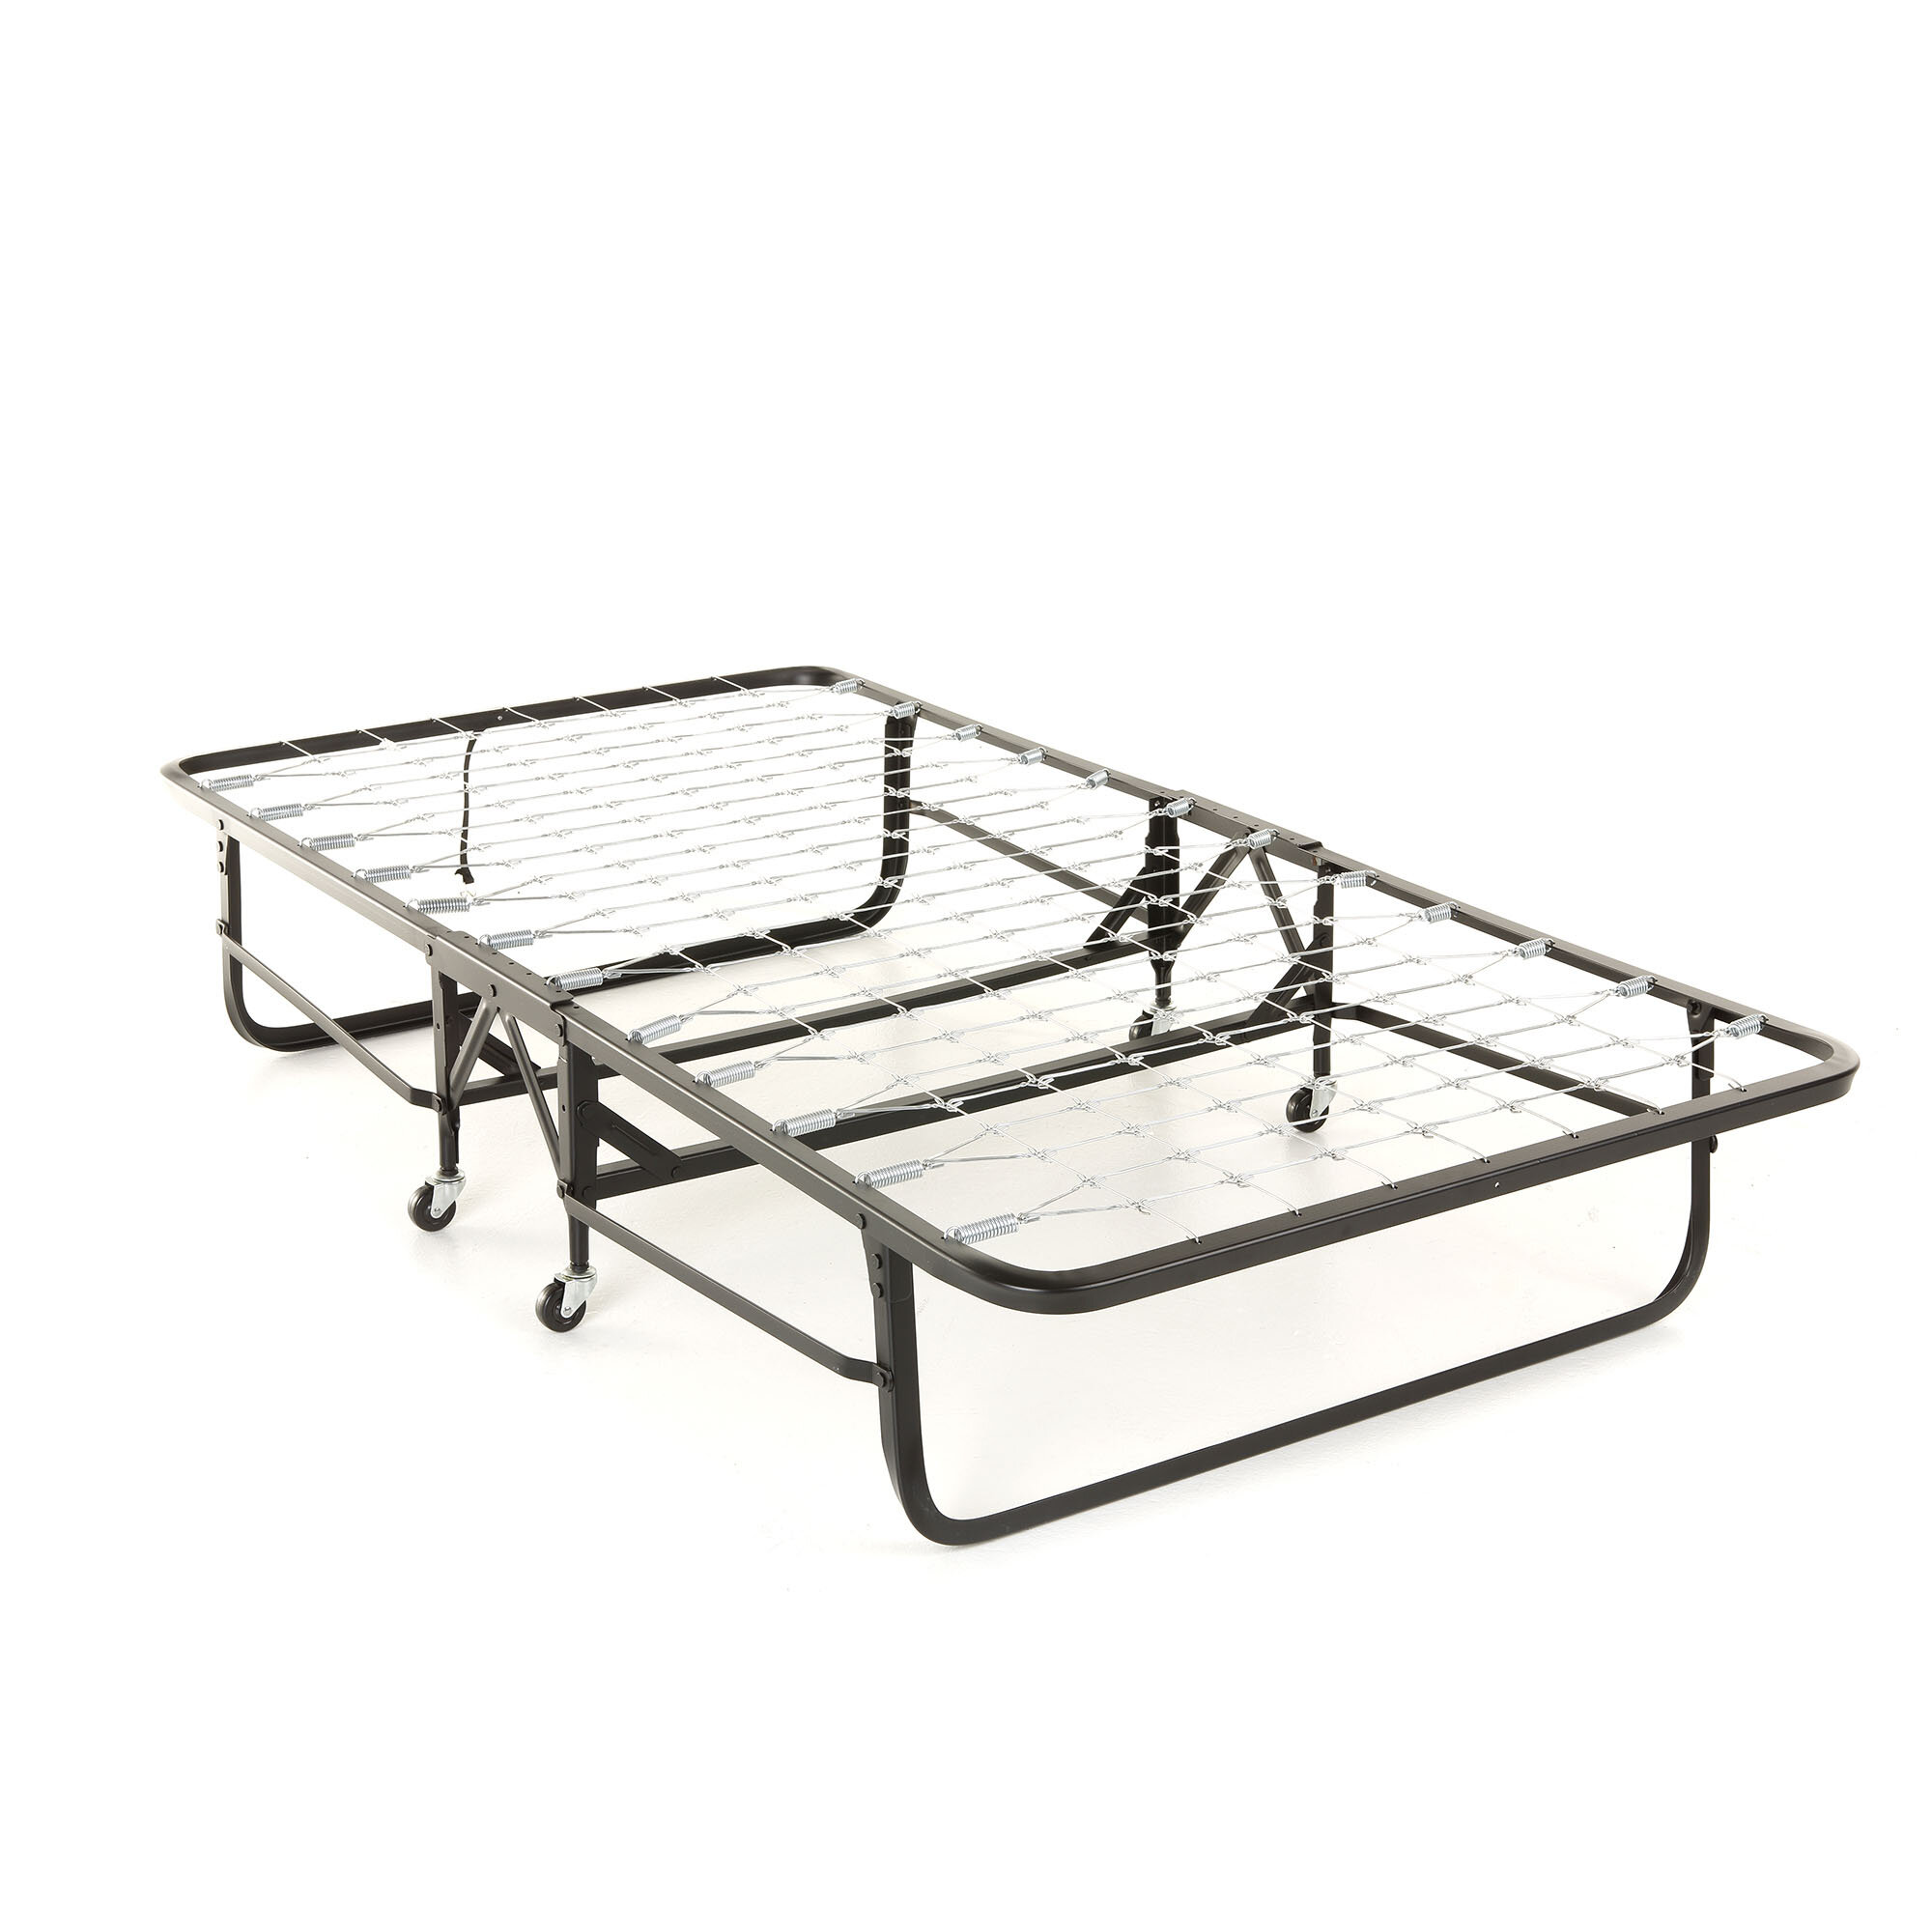 Symple Stuff Folding Link Spring Bed With 39 Foam Mattress And Angle Steel Frame